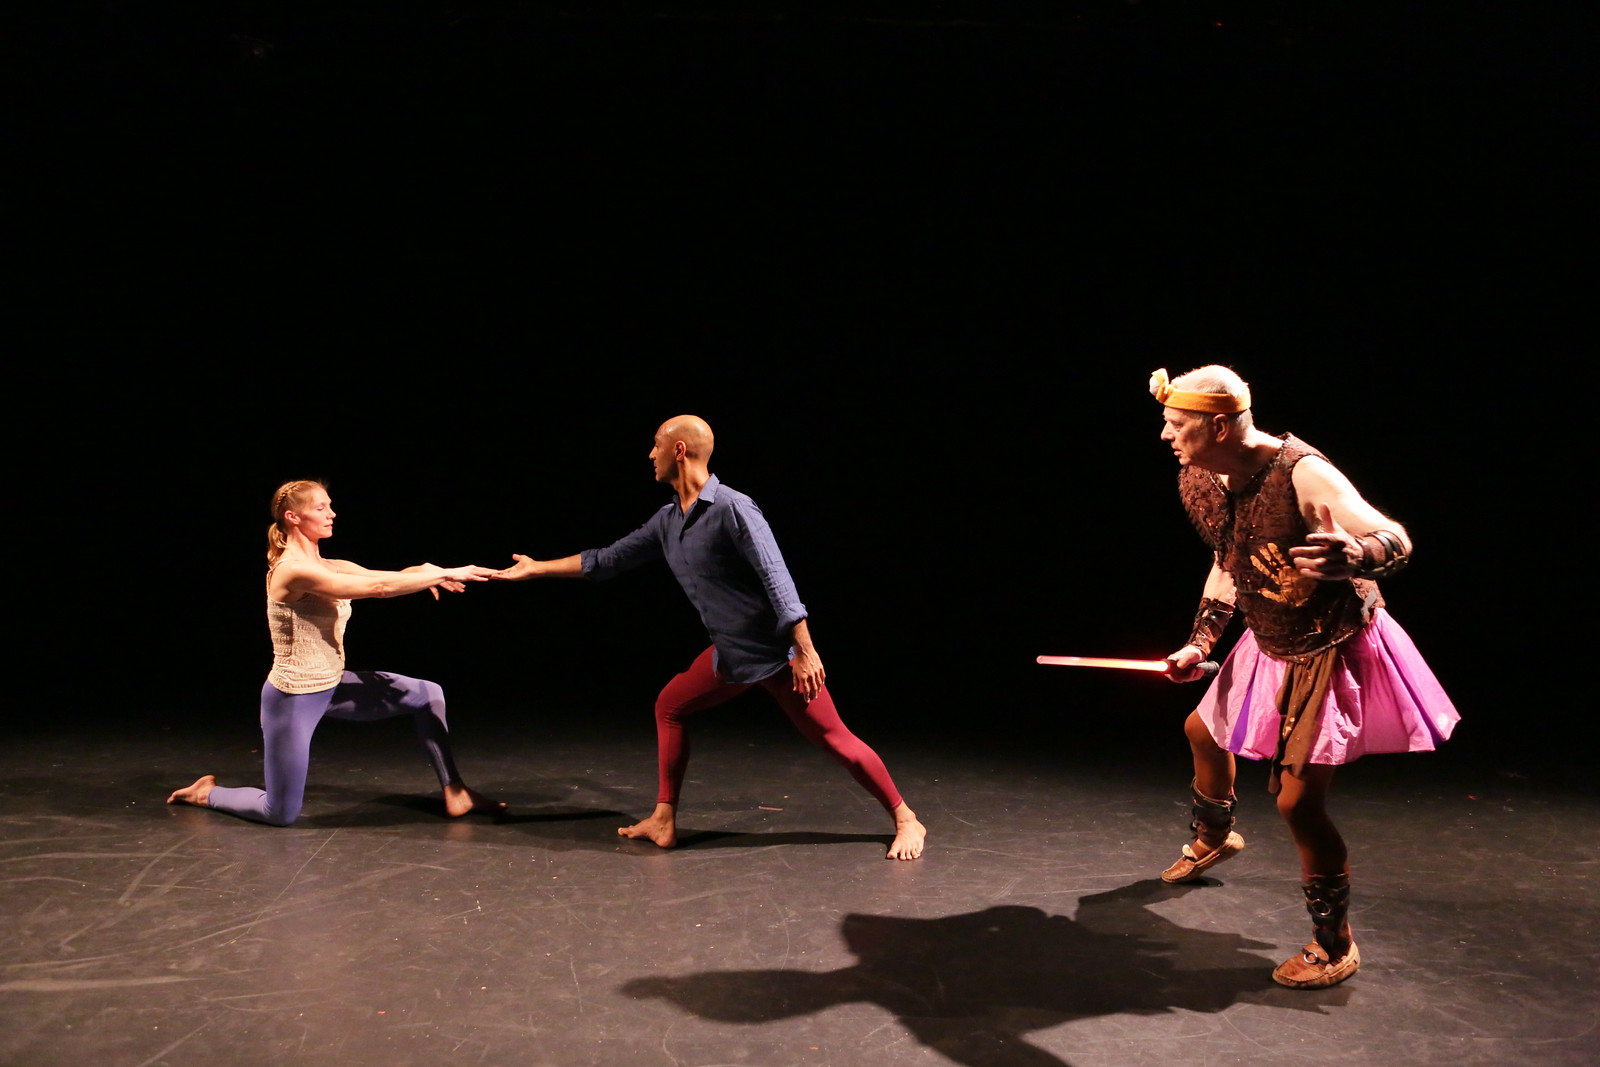 Dancers L to R: Emily Pope, Paul Singh and Douglas Dunn.  Oh Acis  at Dixon Place, 8 in Show, Photo by Peter Yesley, 2017.